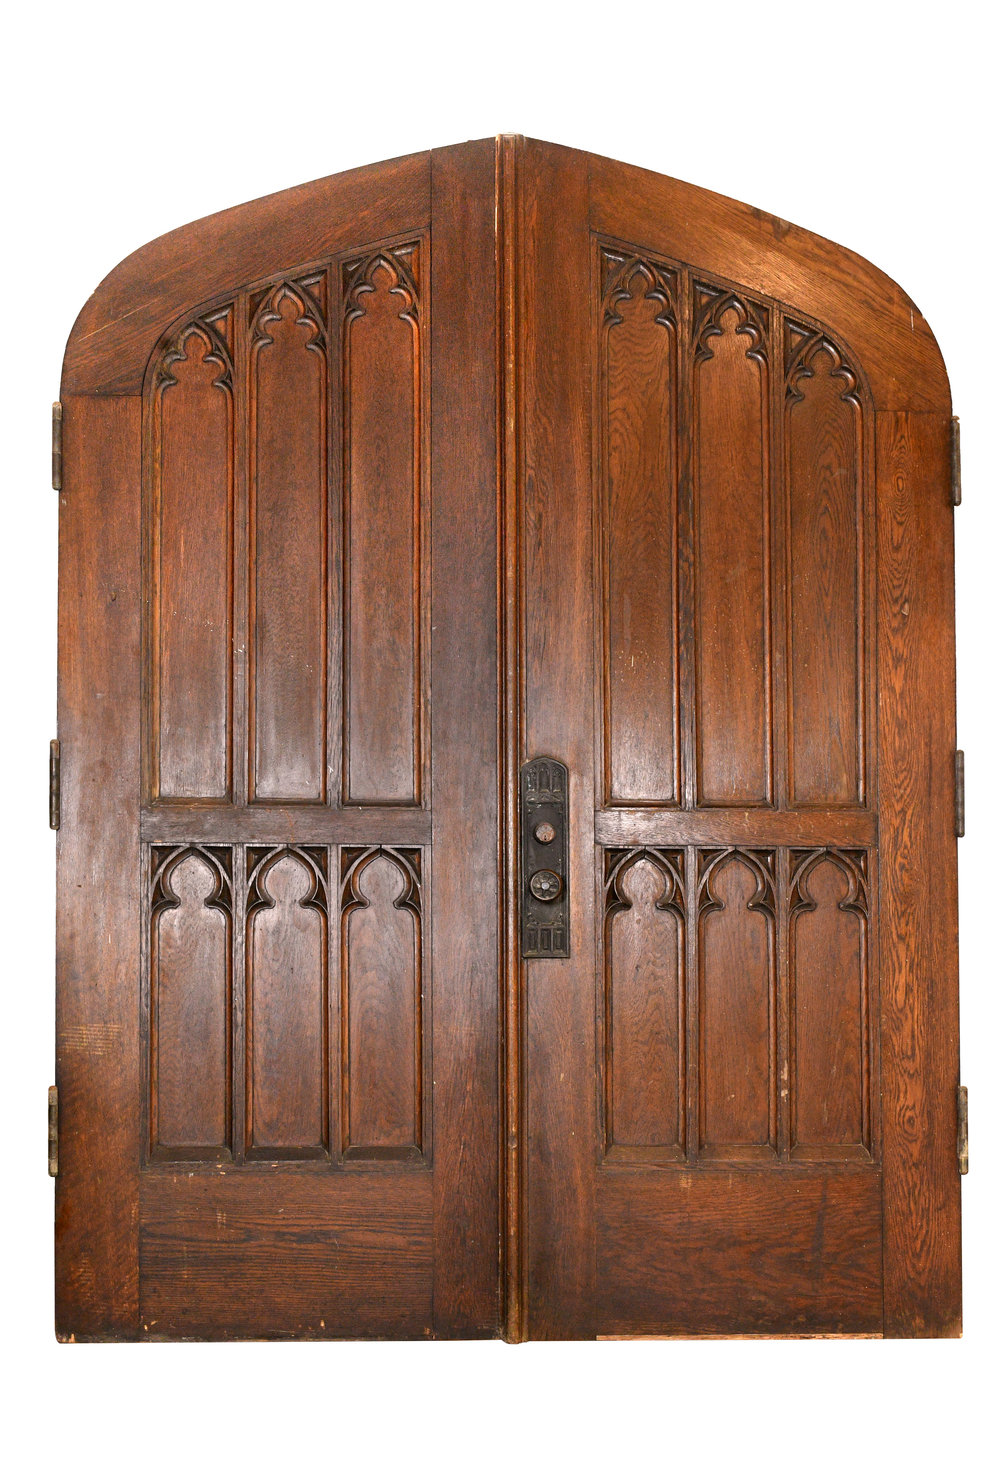 arched gothic oak double doors